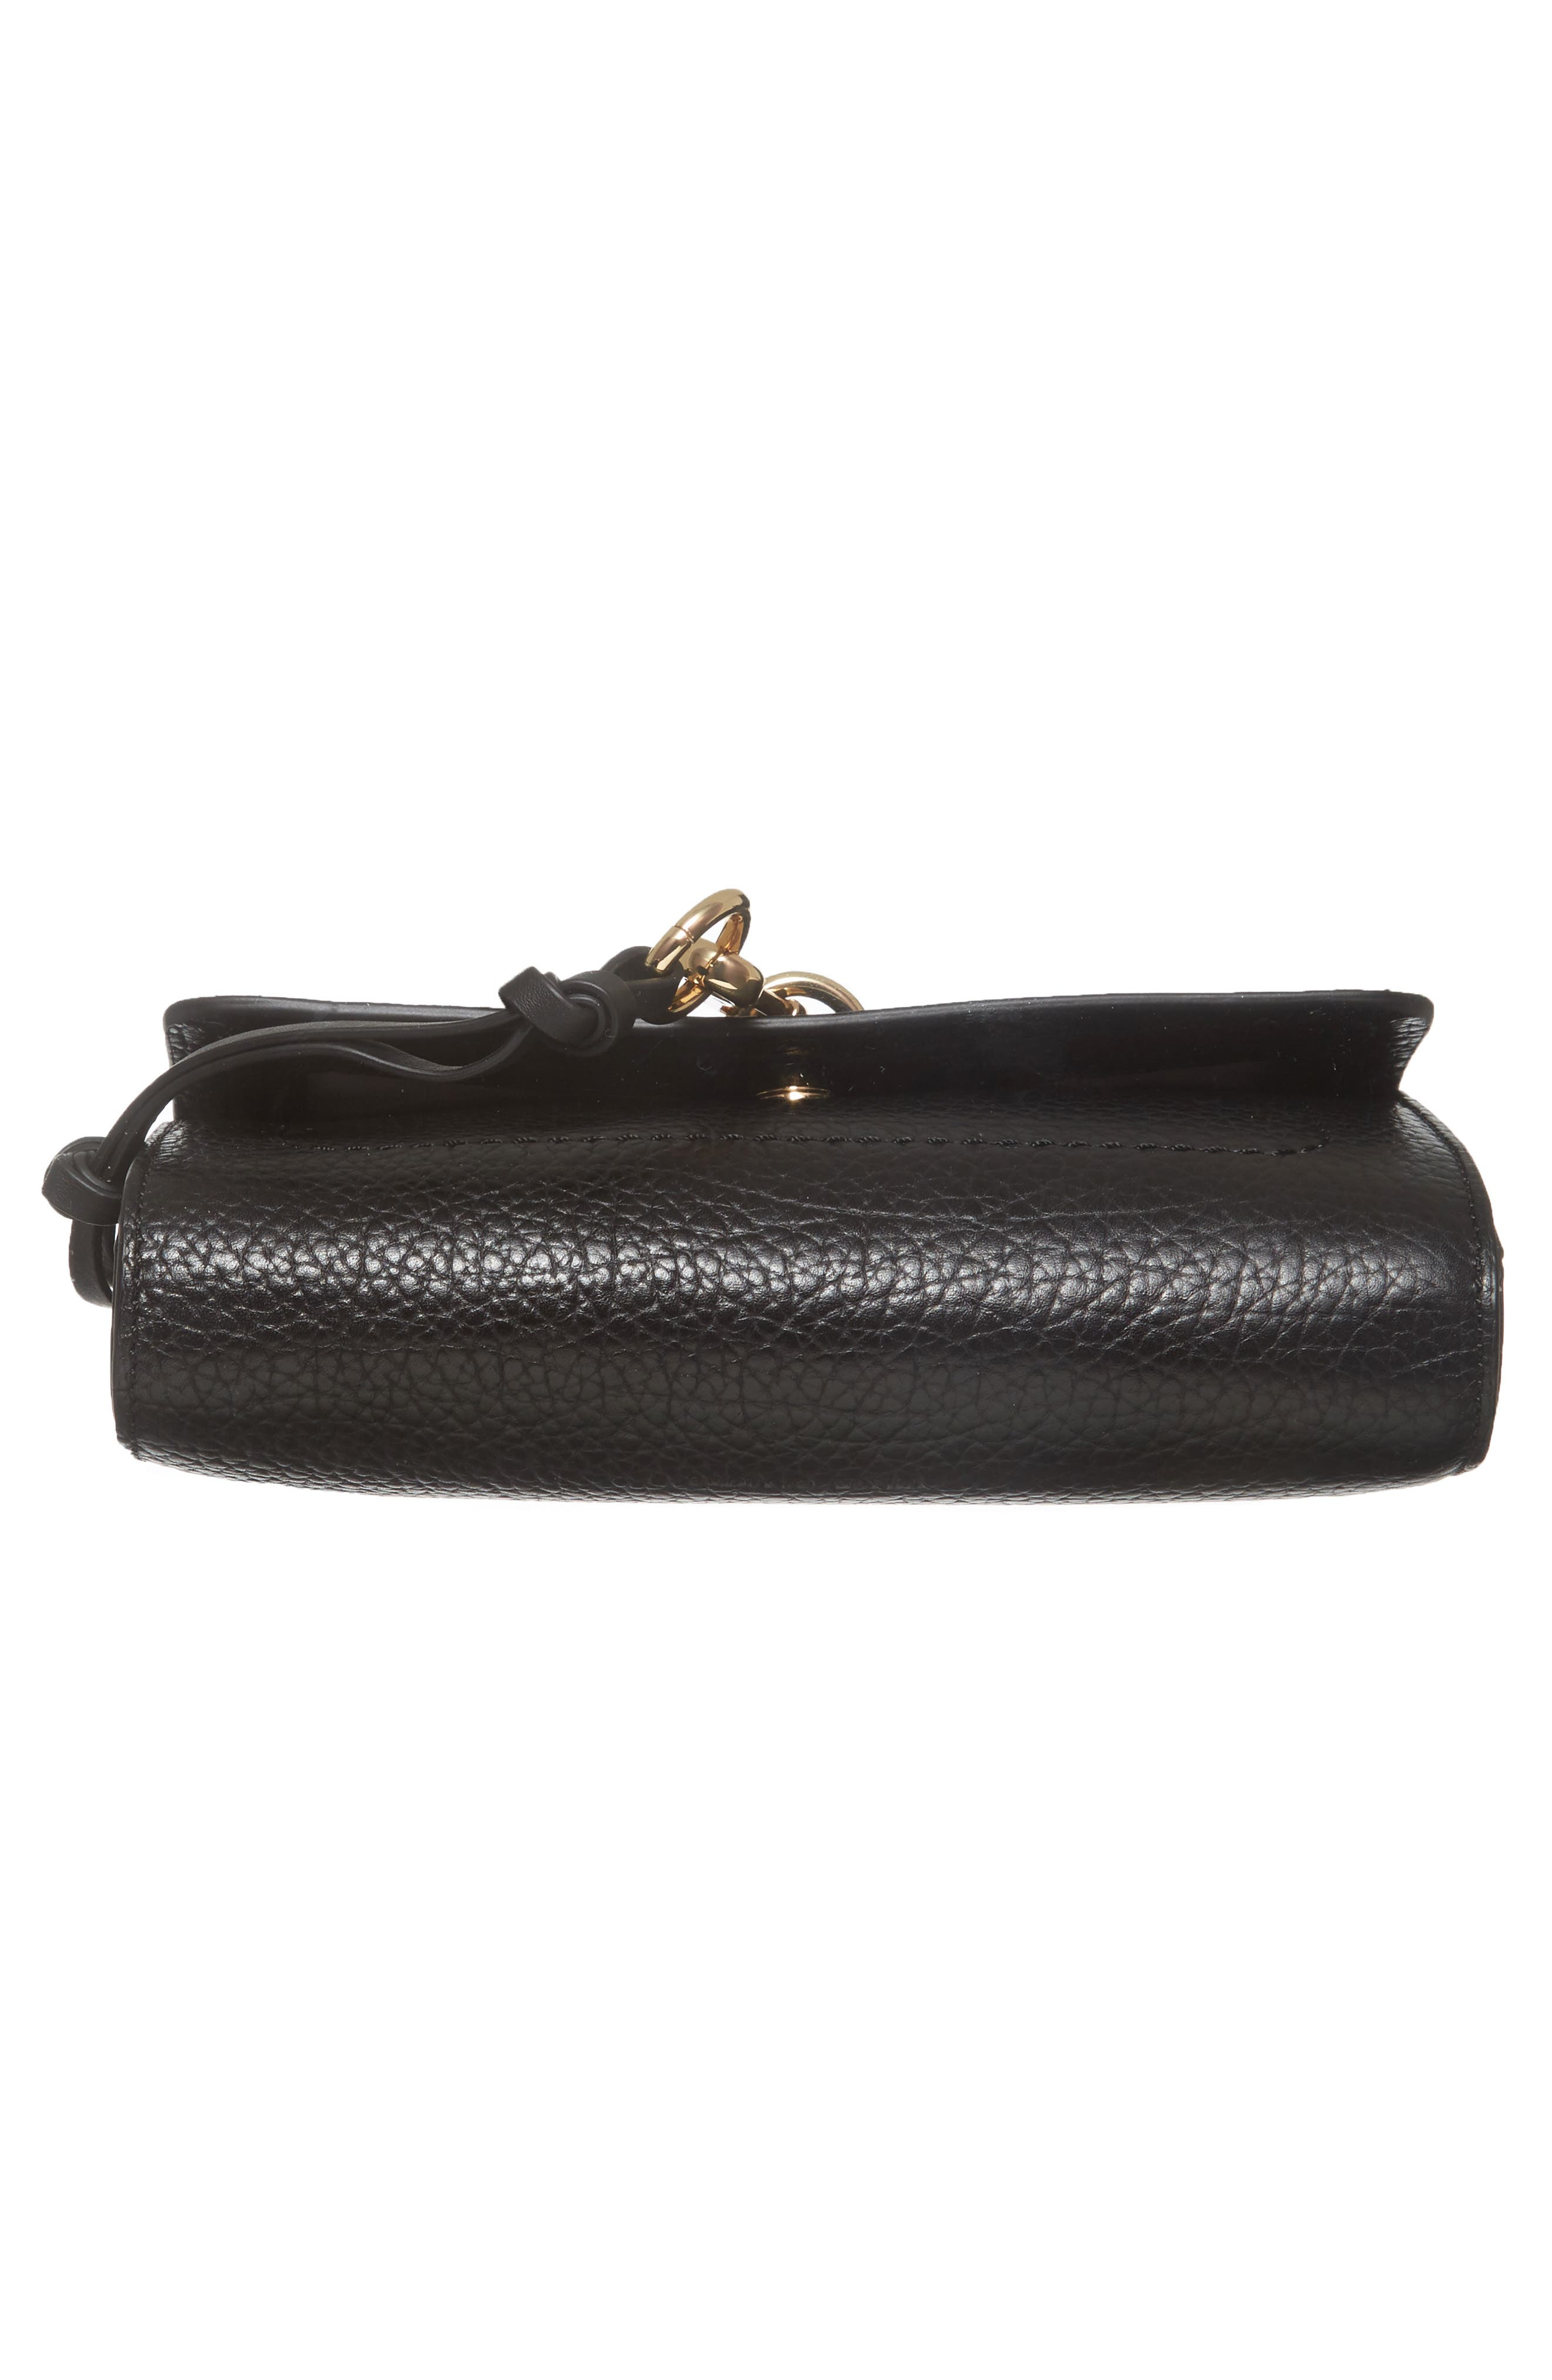 Blena Leather & Suede Clutch,                             Alternate thumbnail 6, color,                             001